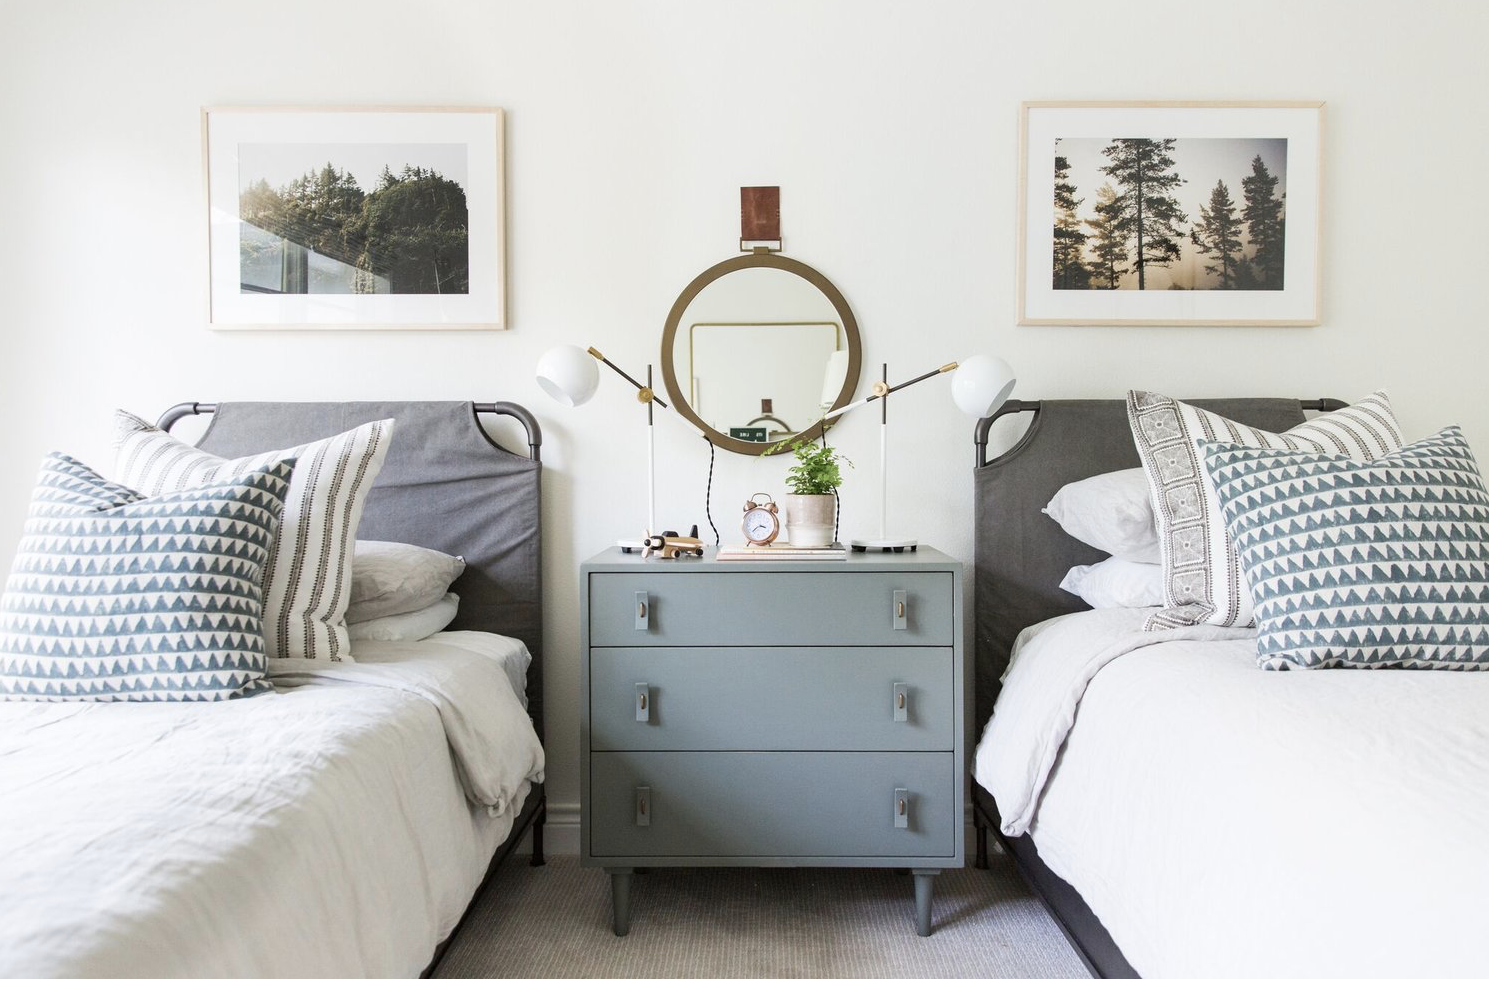 The Big SECRET About Throw Pillows, and My Fav Places To Buy Them